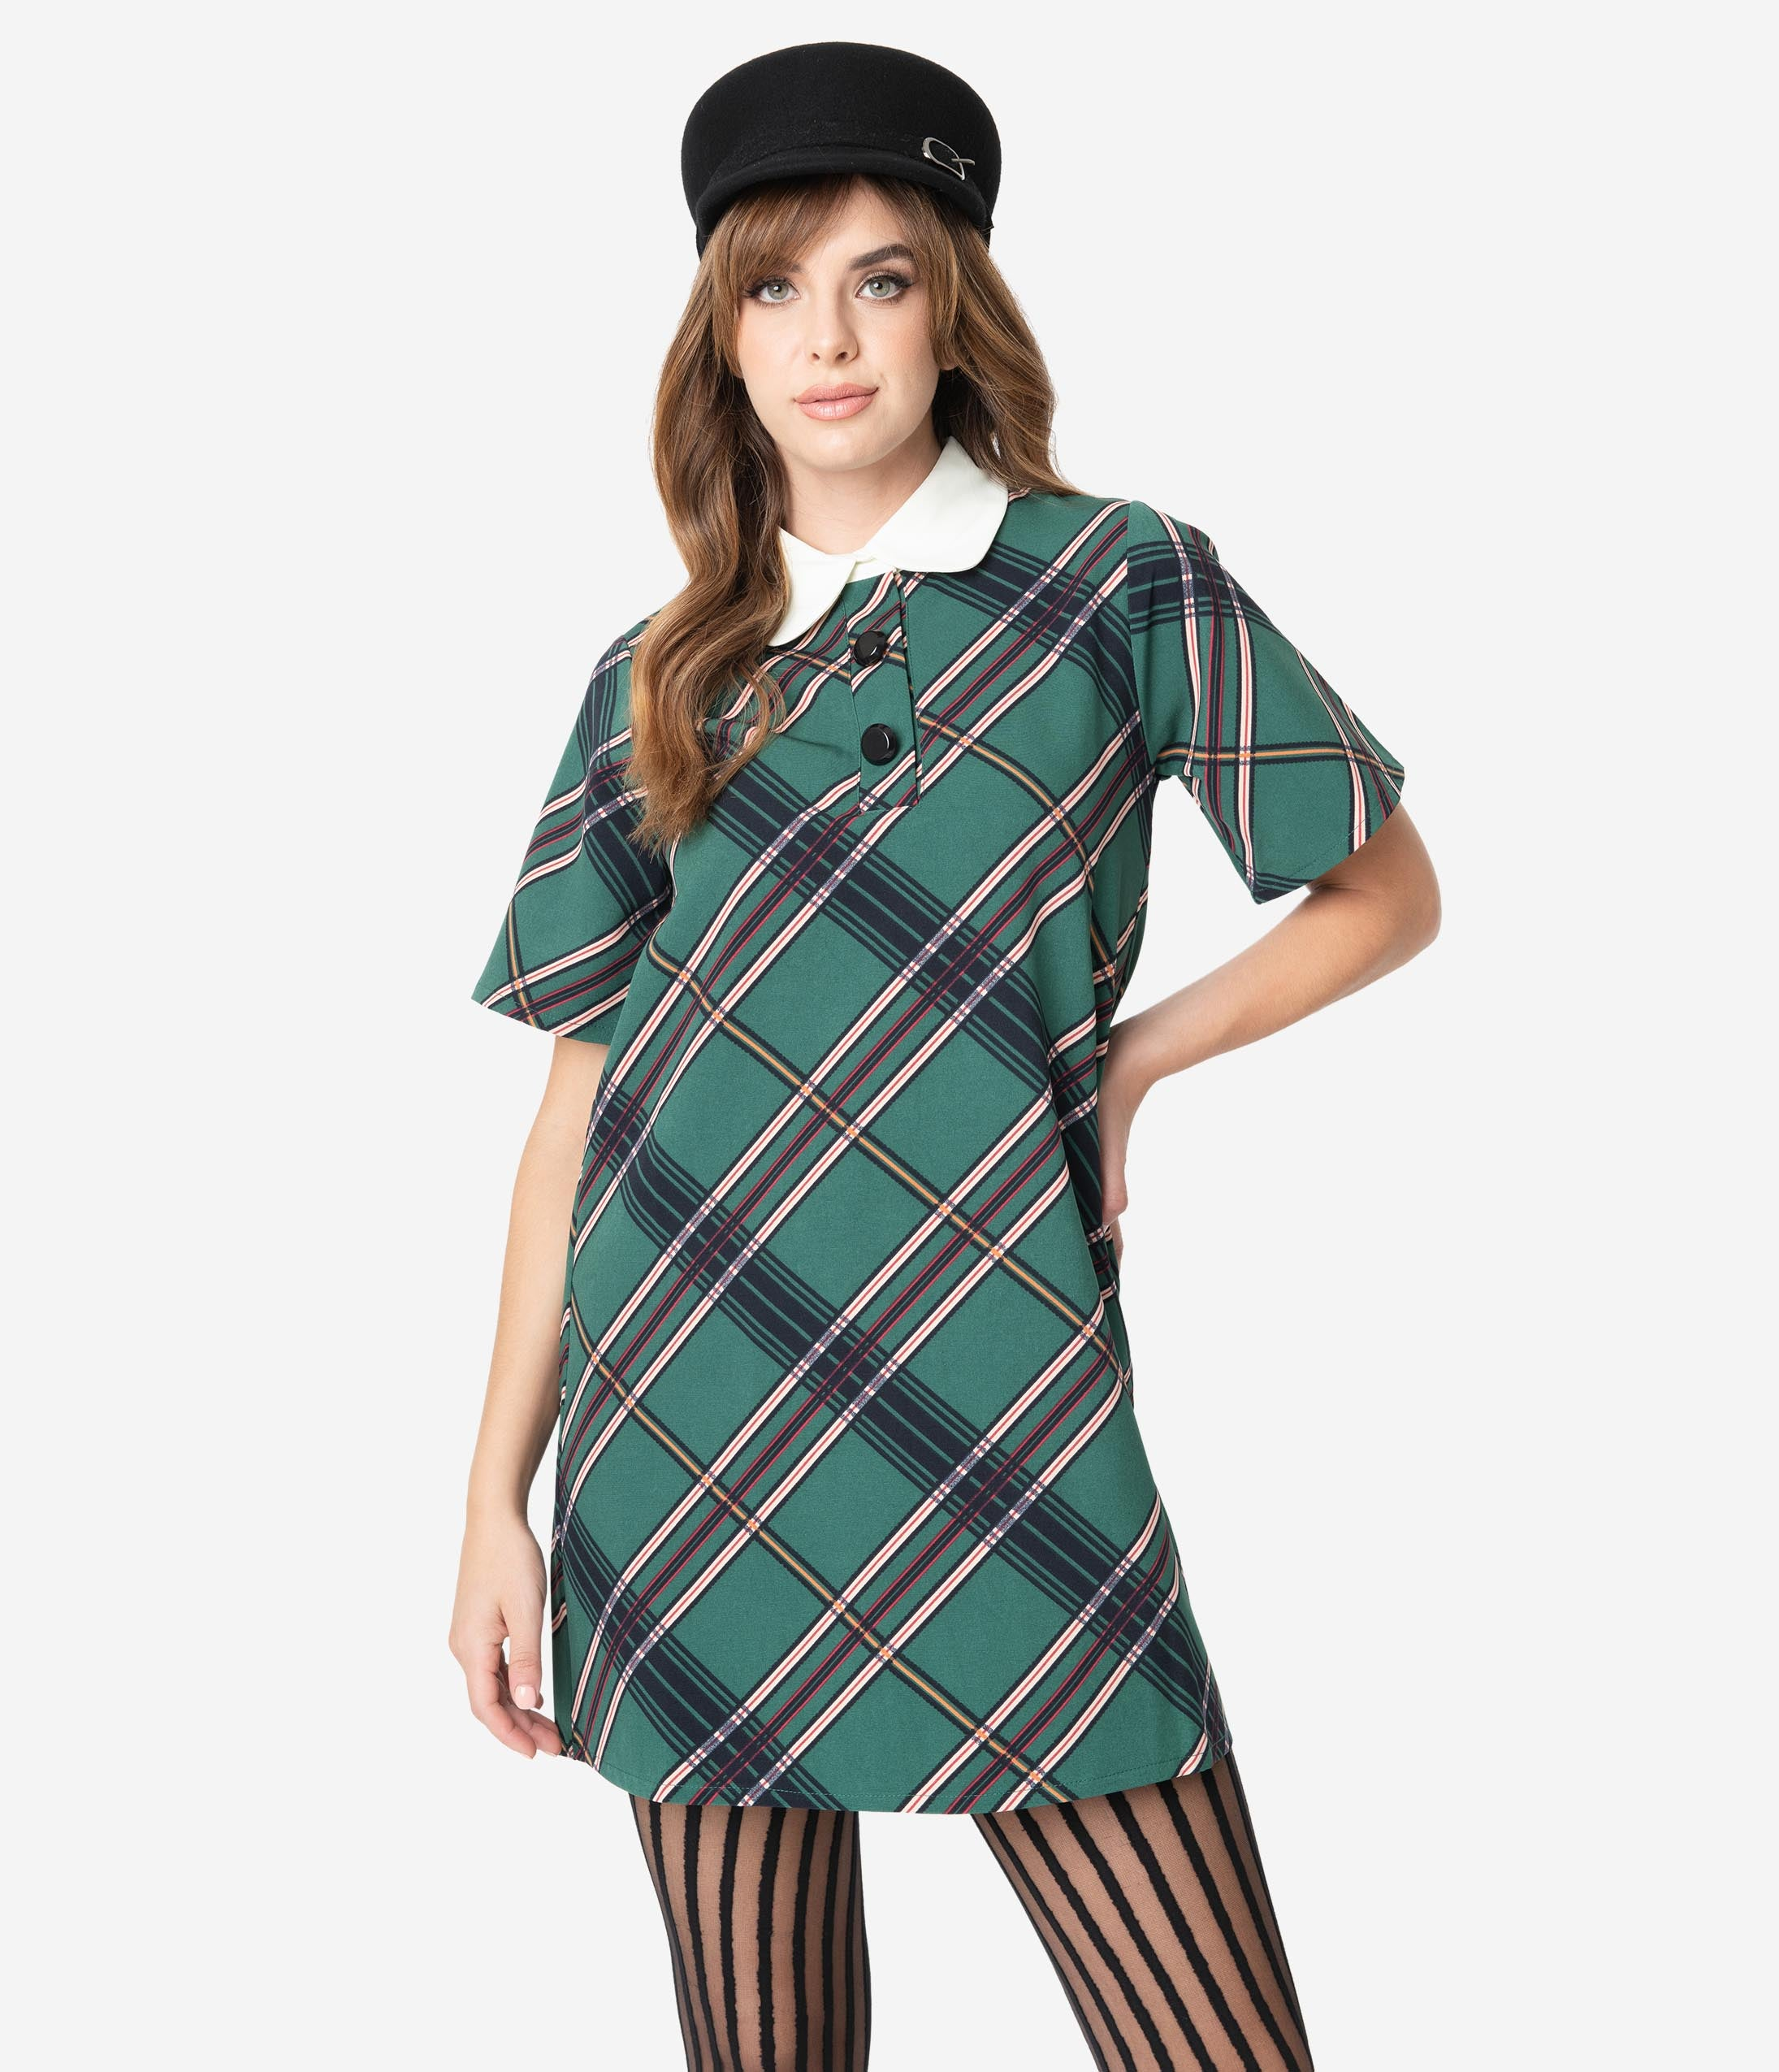 60s Dresses | 1960s Dresses Mod, Mini, Hippie 1960S Style Mistletoe Green Plaid Short Sleeve Shift Dress $88.00 AT vintagedancer.com